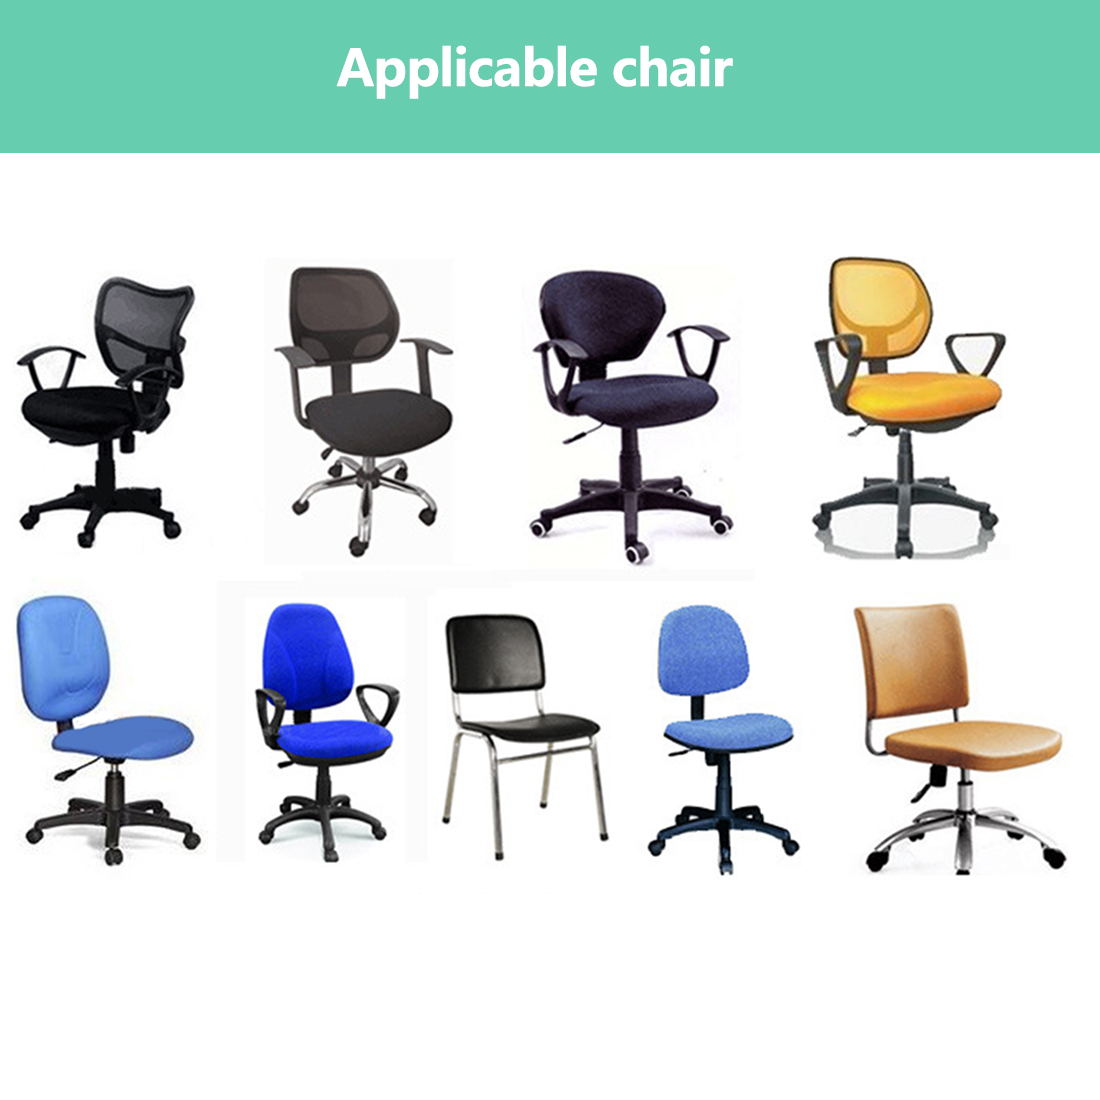 Elastic Chair Covers Made with Polyester Material For Office and Computer Chair in Universal Size 11